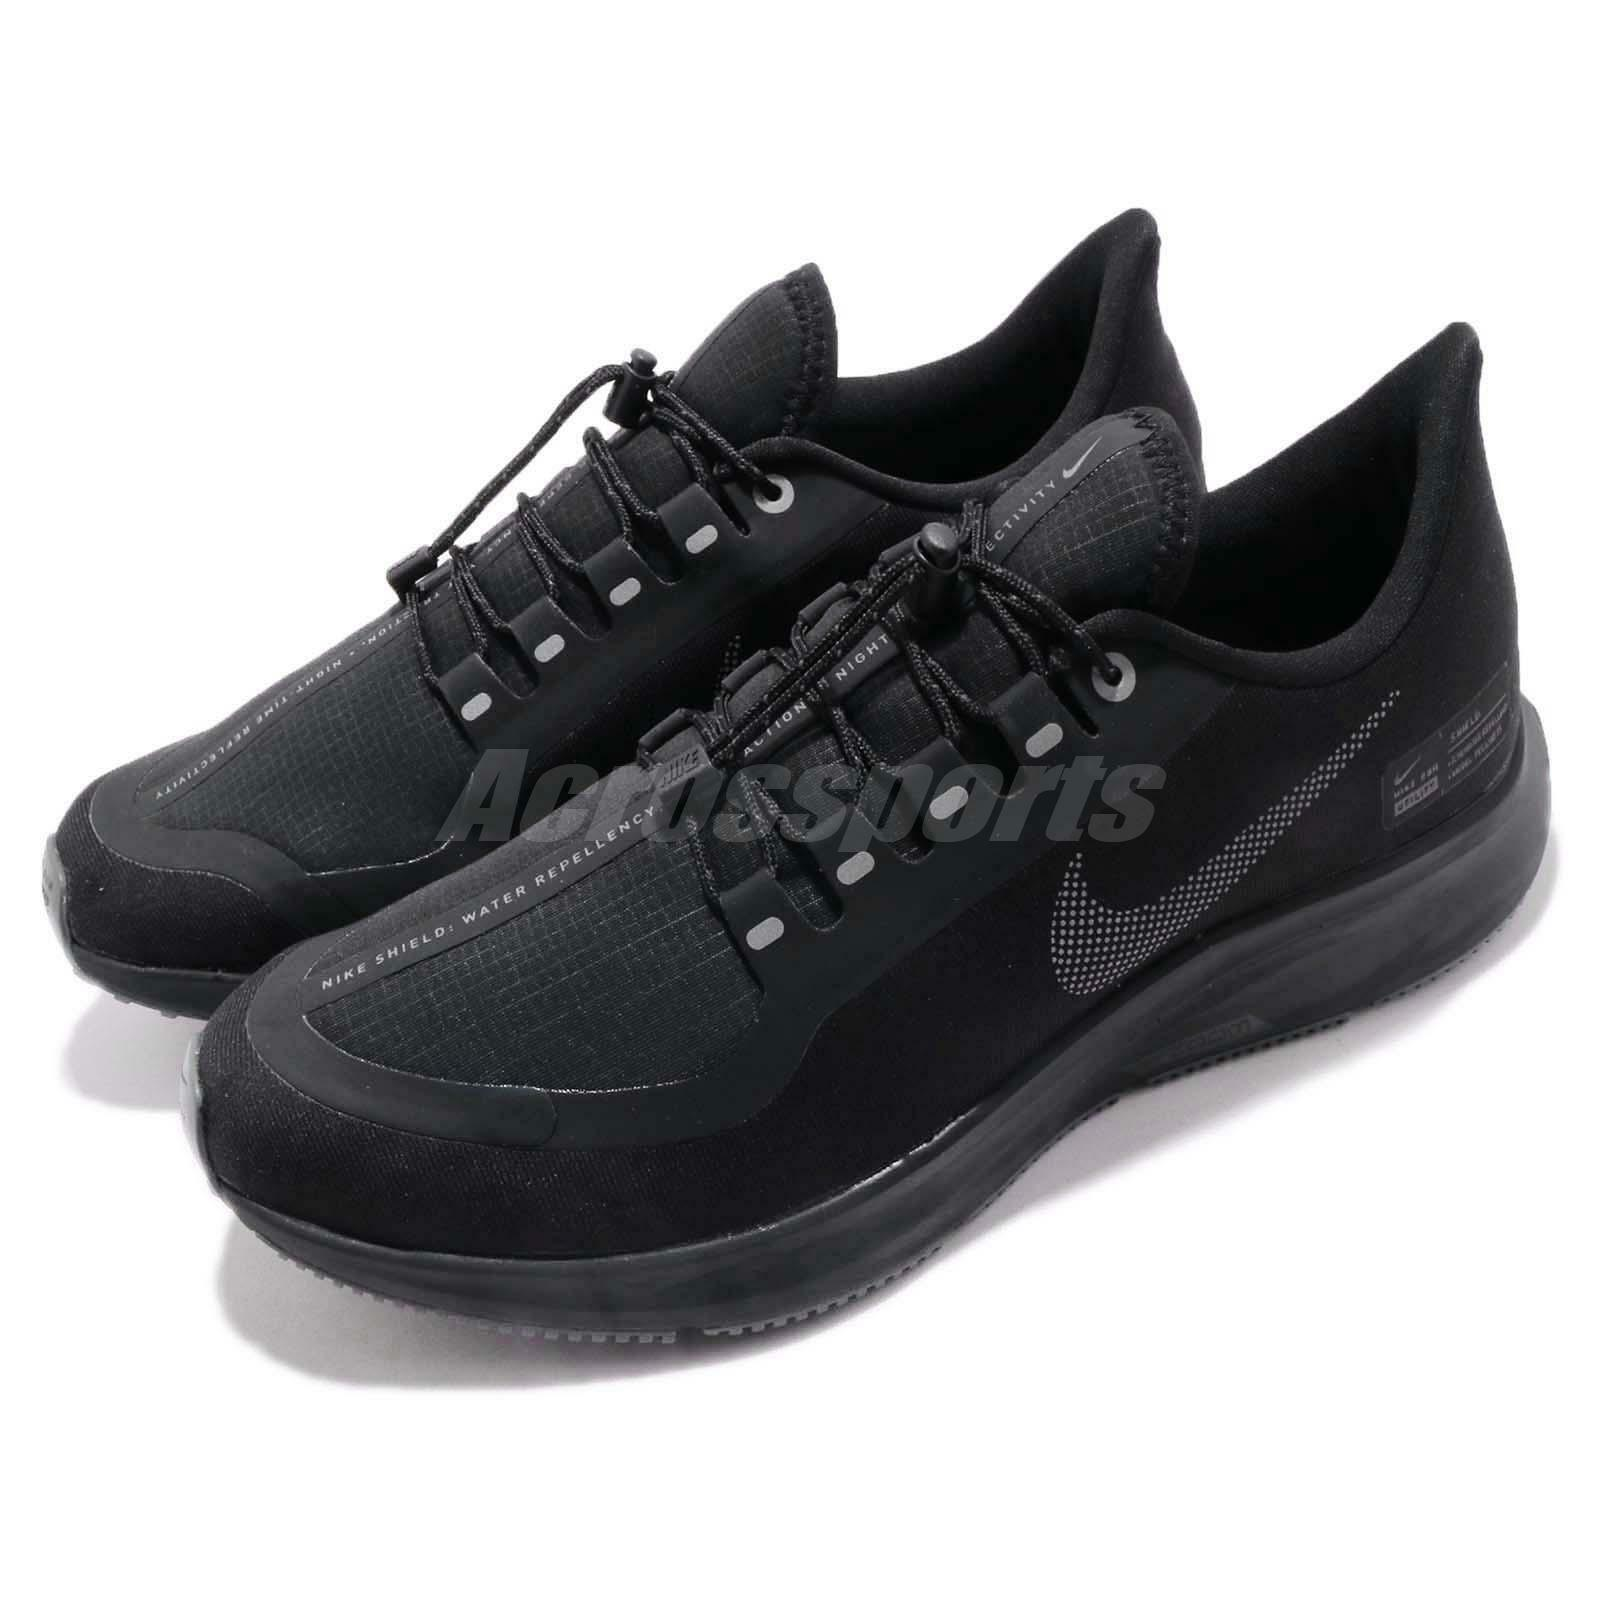 Nike Air Zoom Pegasus 35 / Shield Hombre Running Zapatos Zapatos Running Runner zapatillas Pick 1 896694